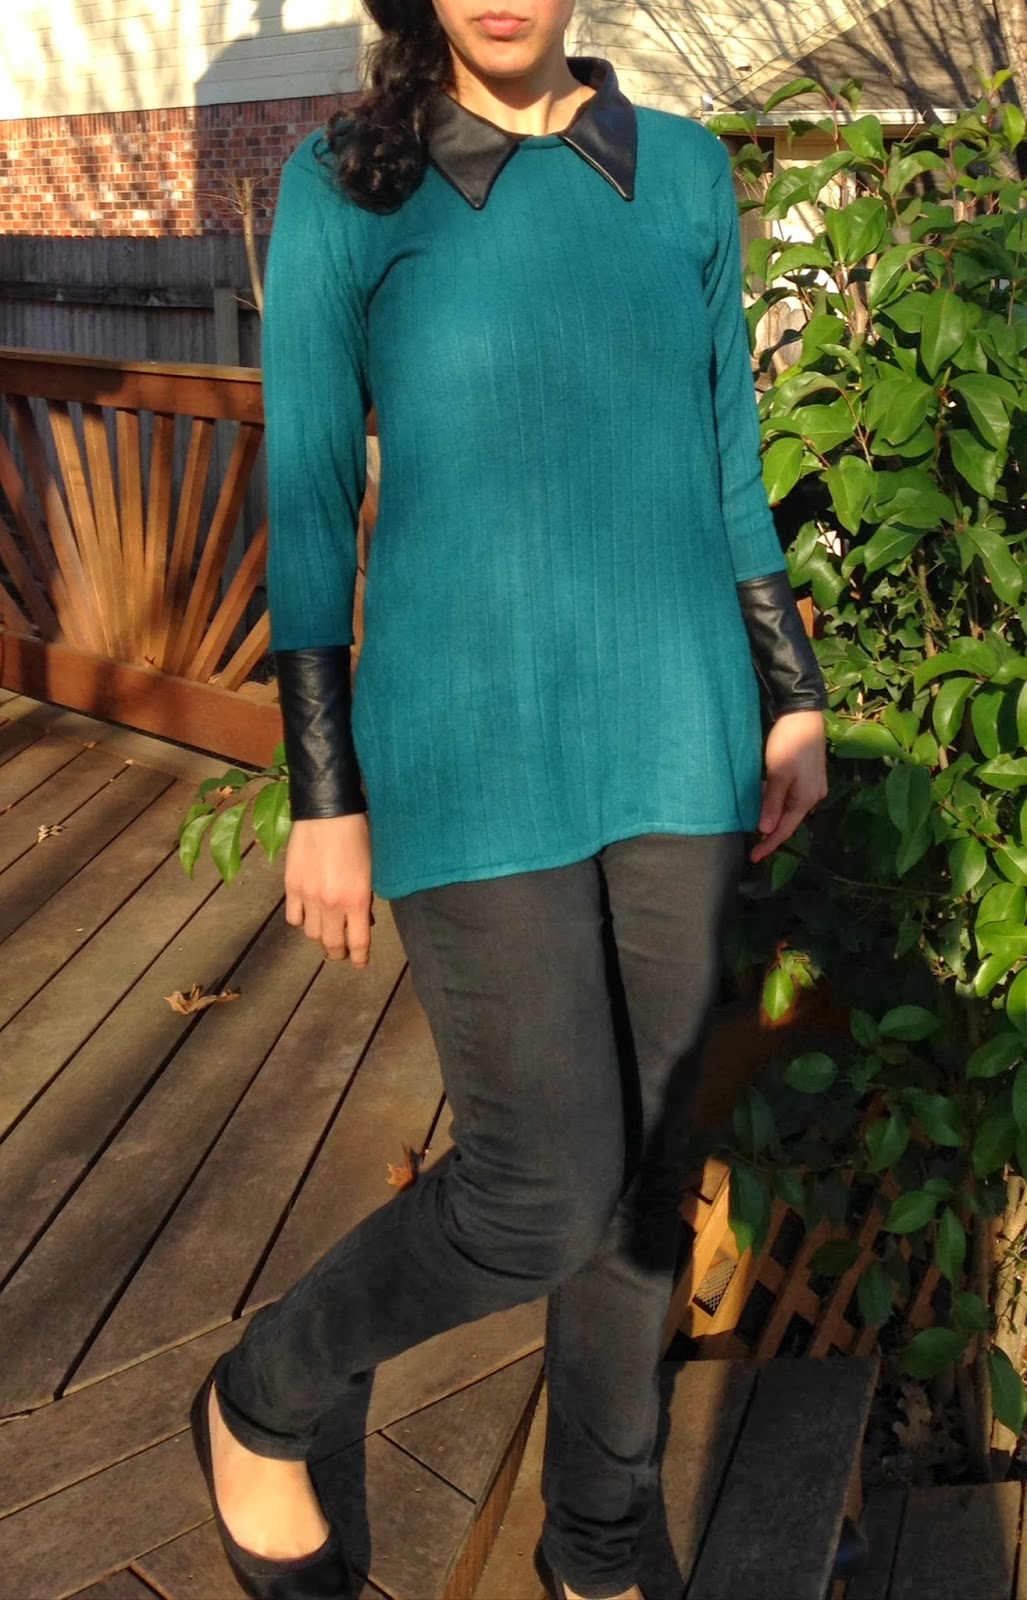 Ulterior Alterations: Refashioned Sweater with Removable Leather Details